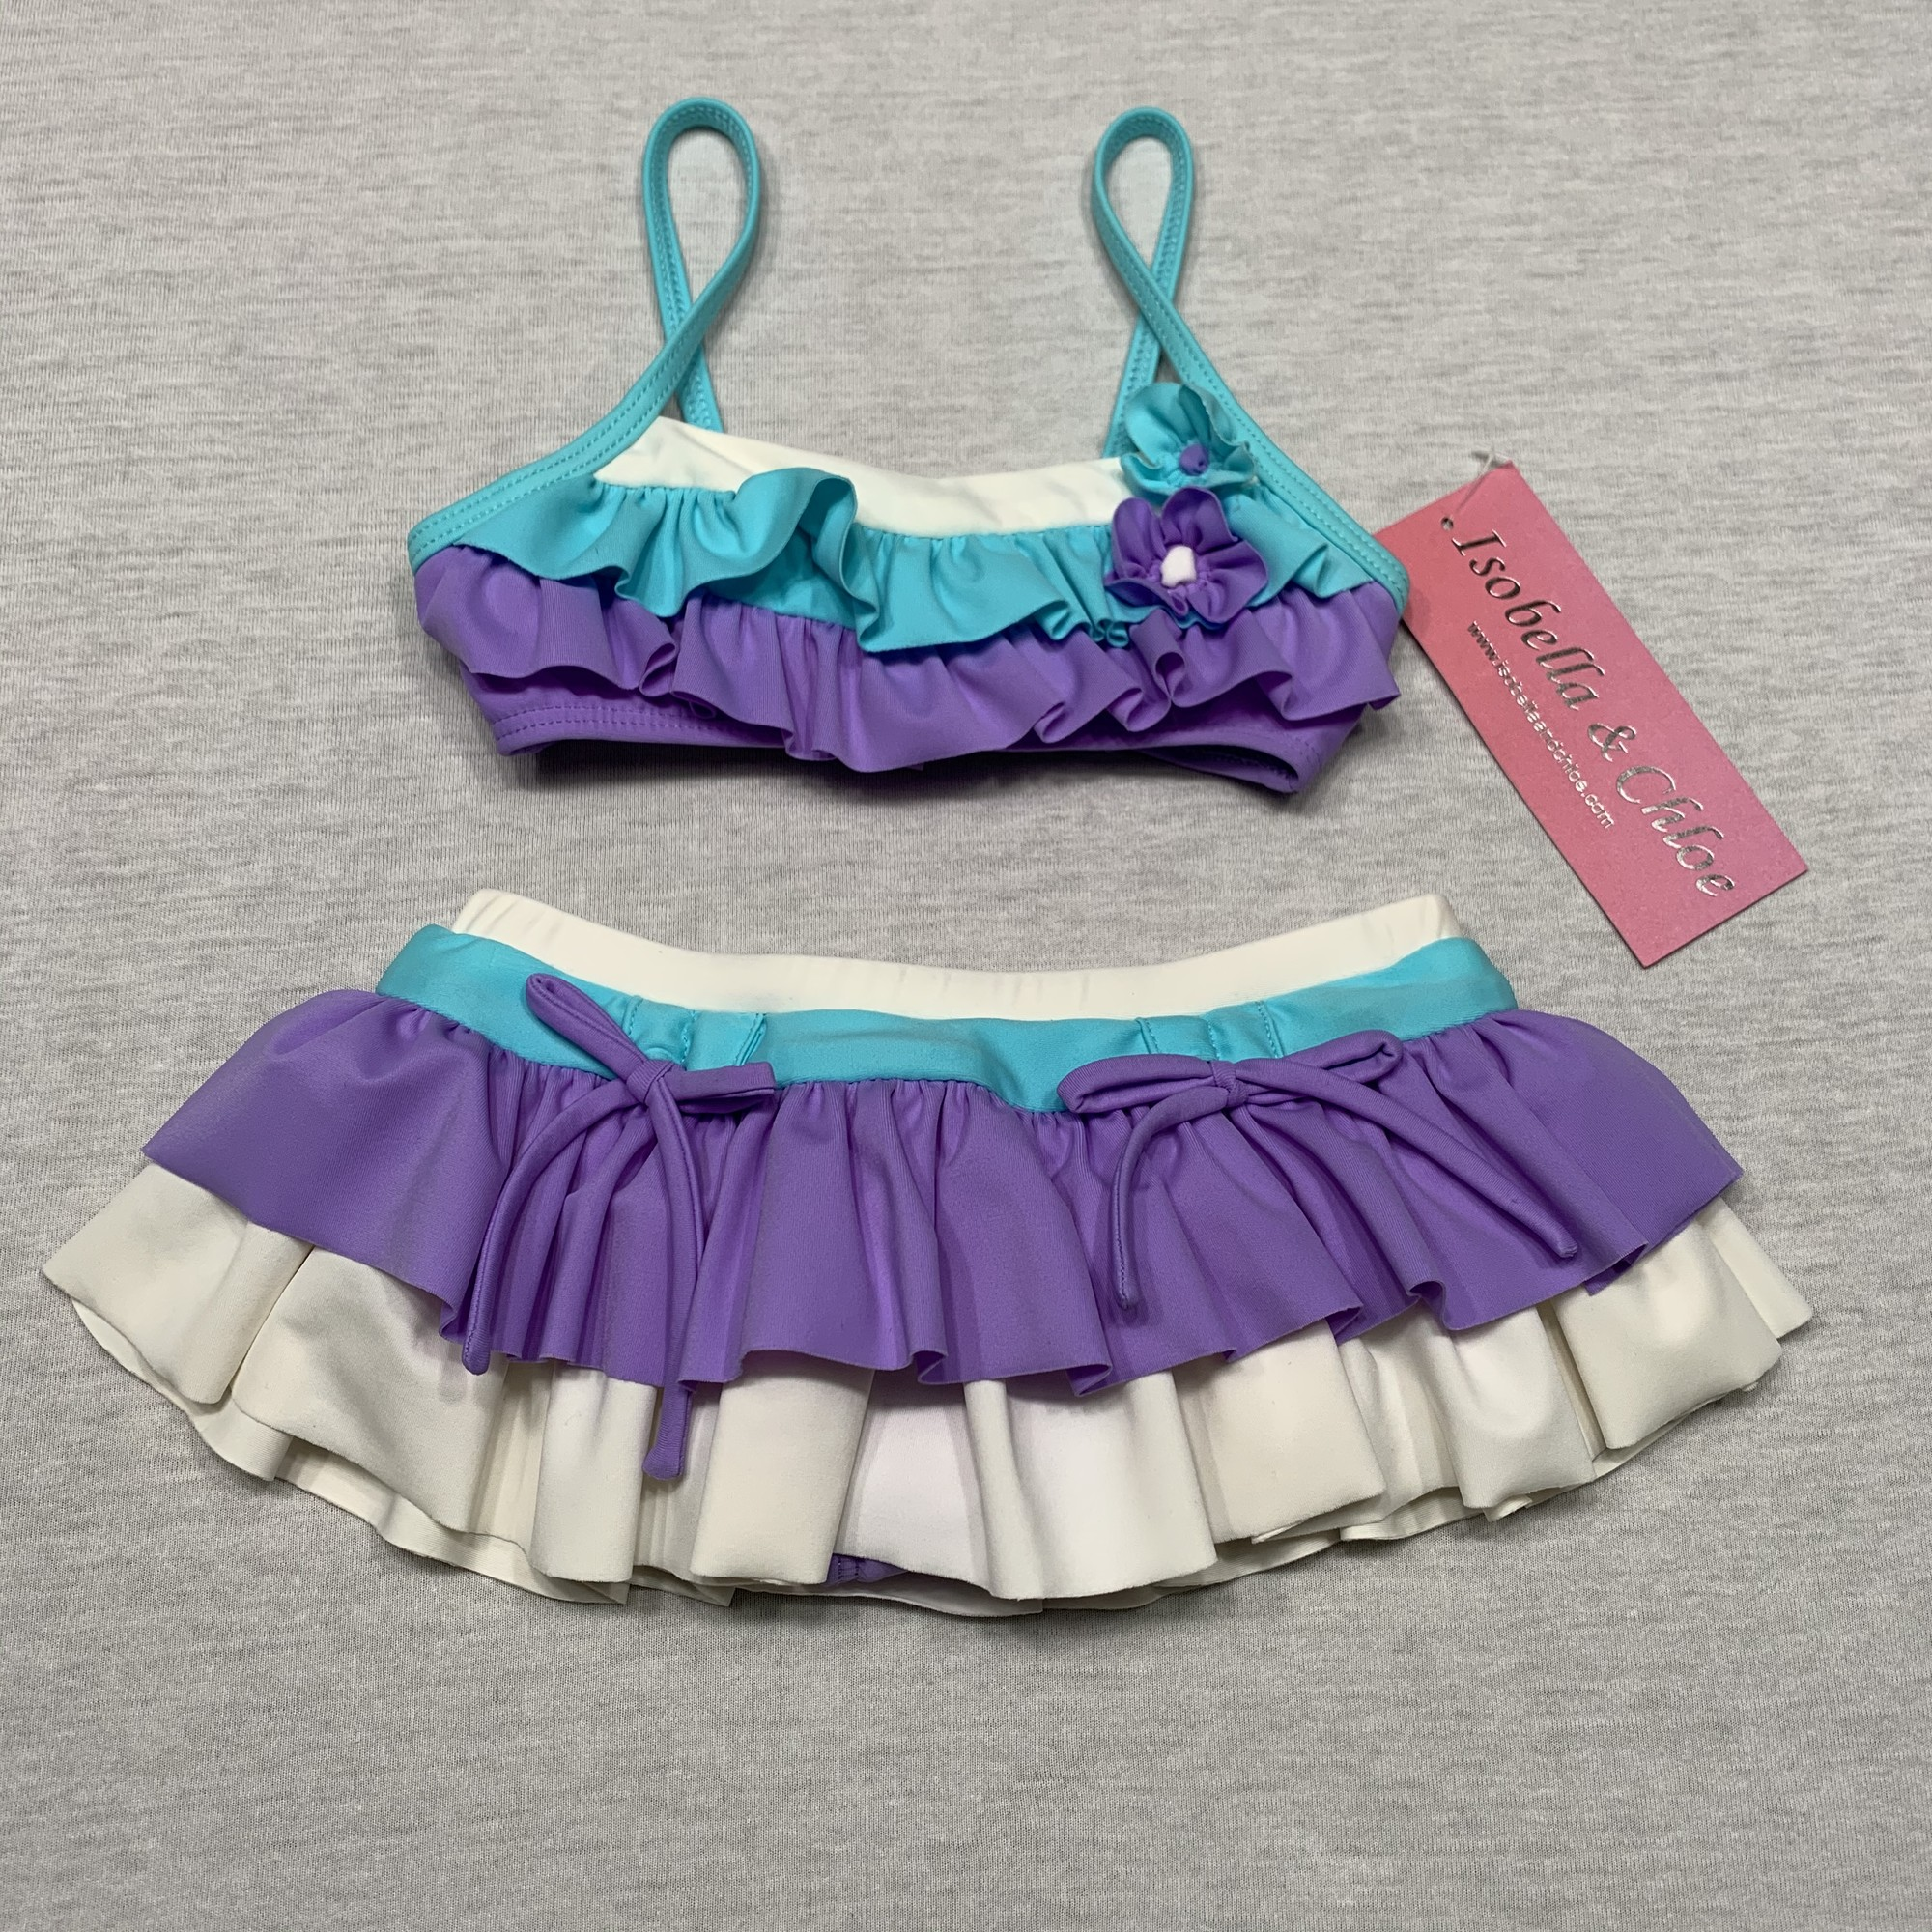 NWT Swimsuit with ruffles & decorative flowers